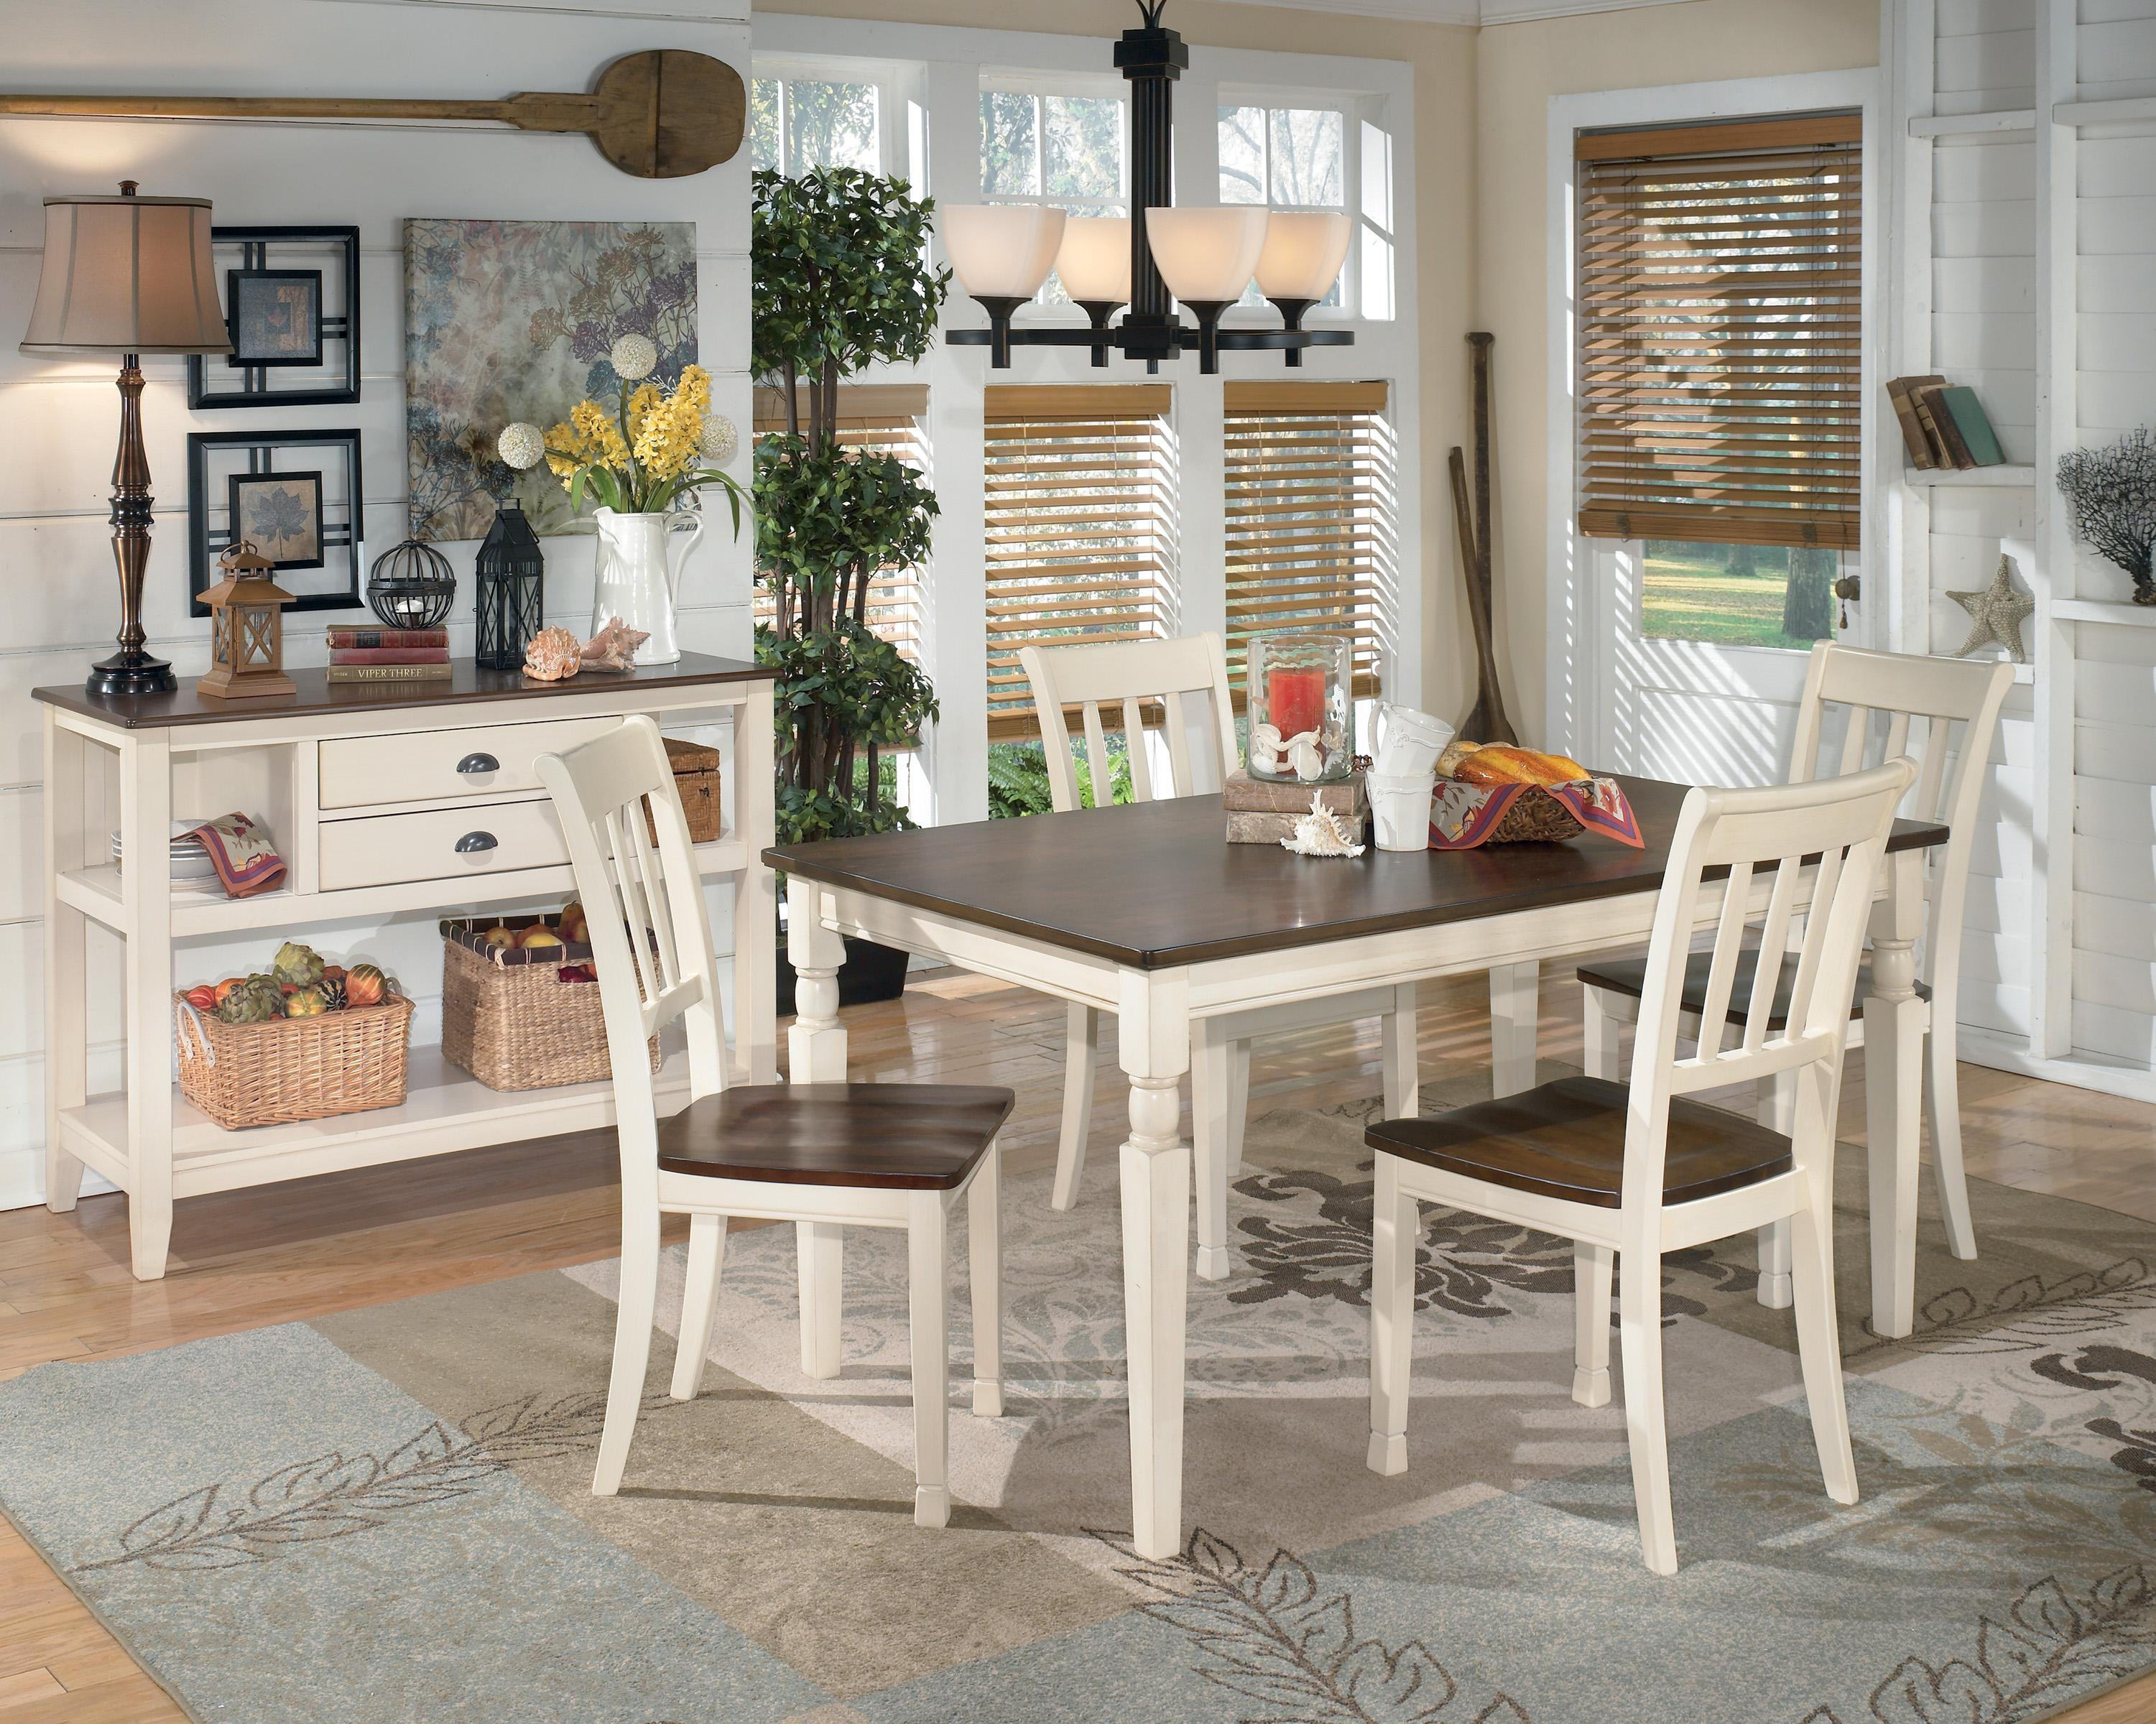 Best ideas about Ashley Furniture Dining Table . Save or Pin Signature Design by Ashley Whitesburg D583 25 Rectangular Now.